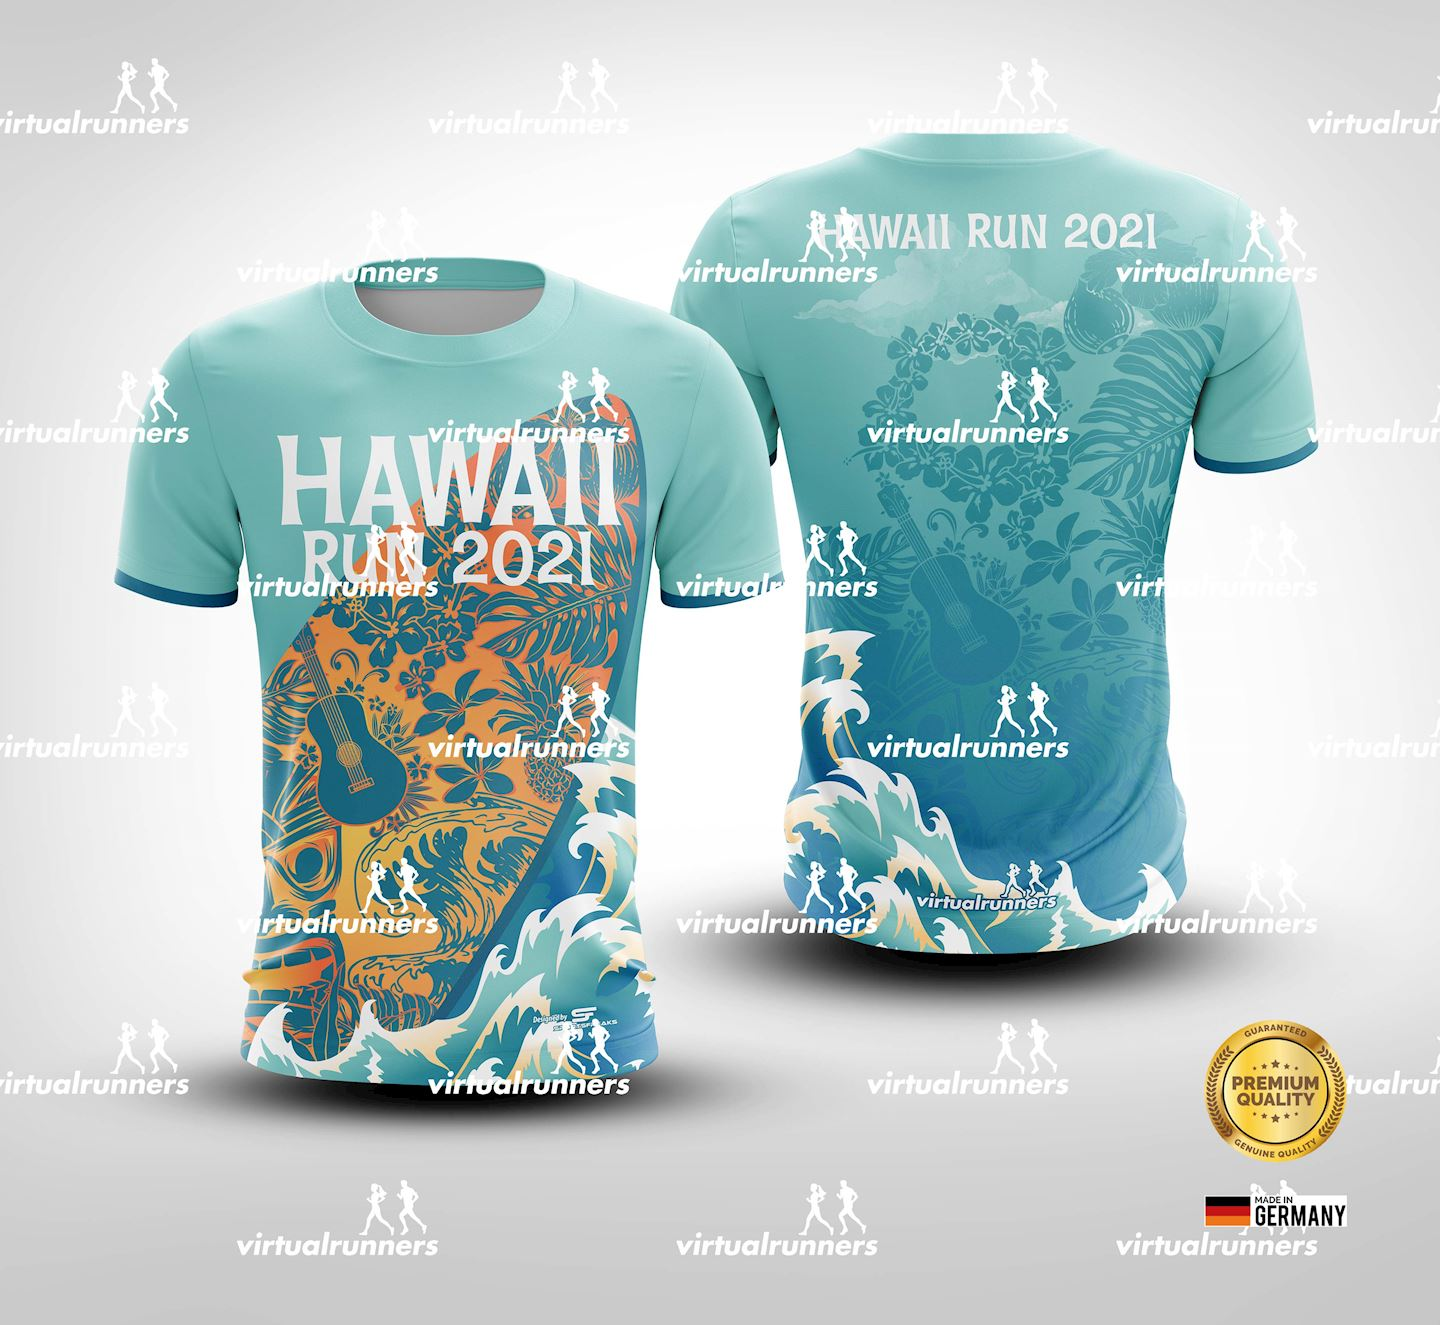 magic of hawaii virtual run